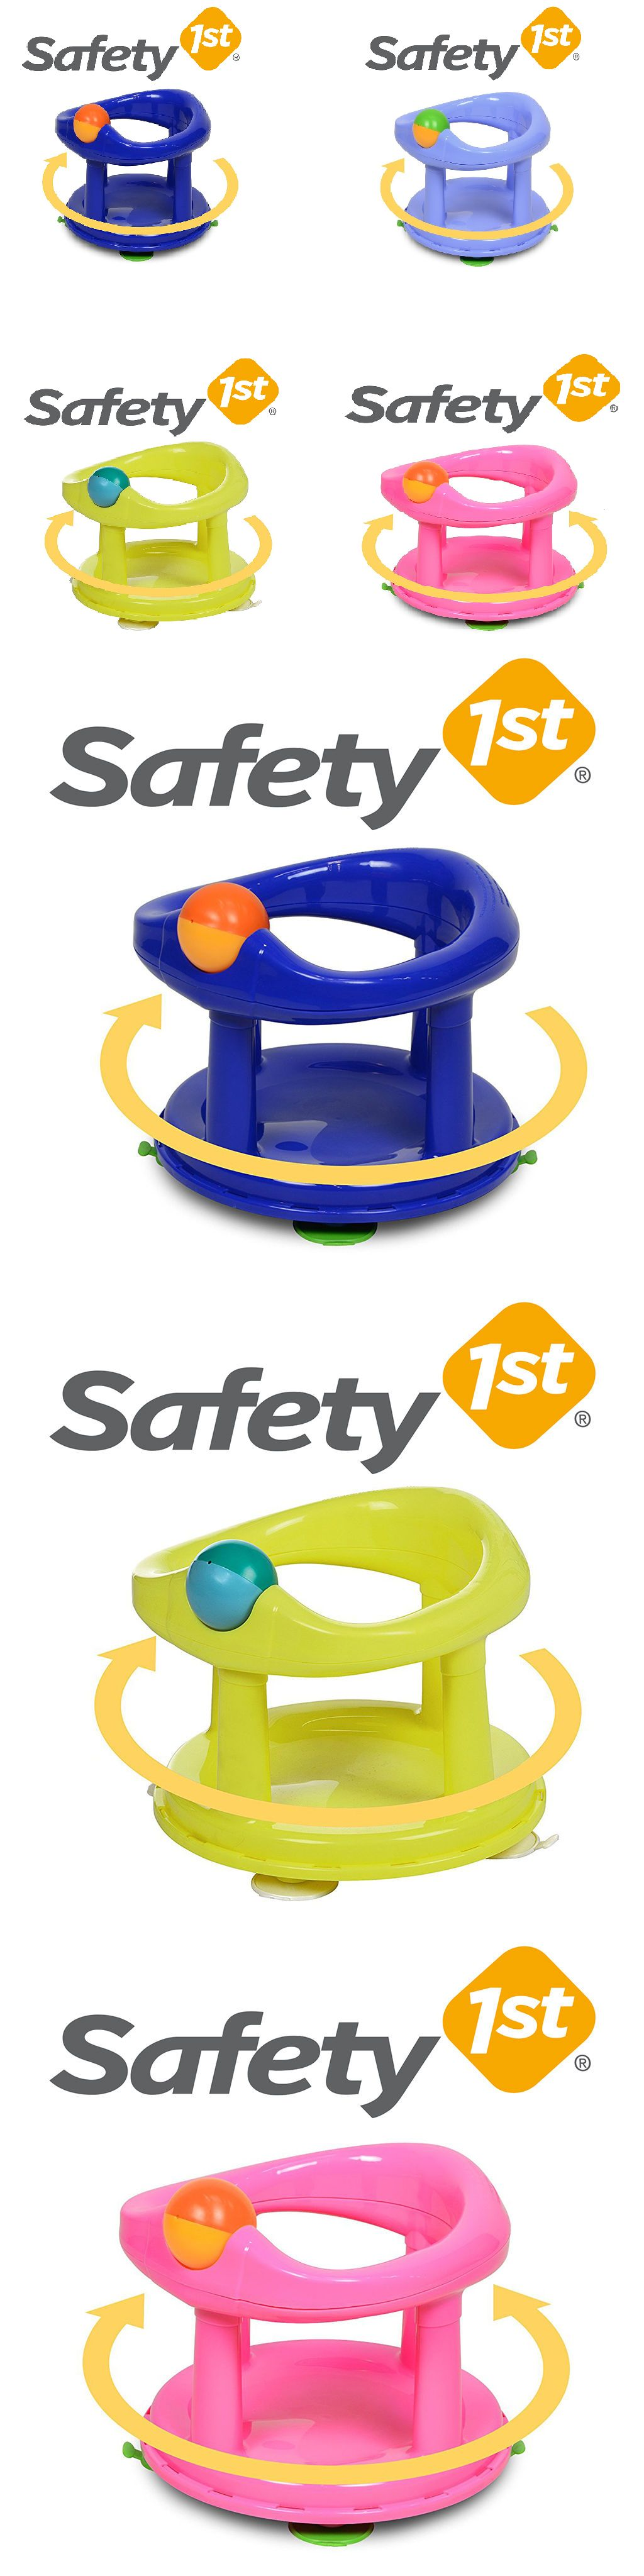 Safety First Swivel Baby Bath Tub Rotating Safety 1st Ring Seat ...